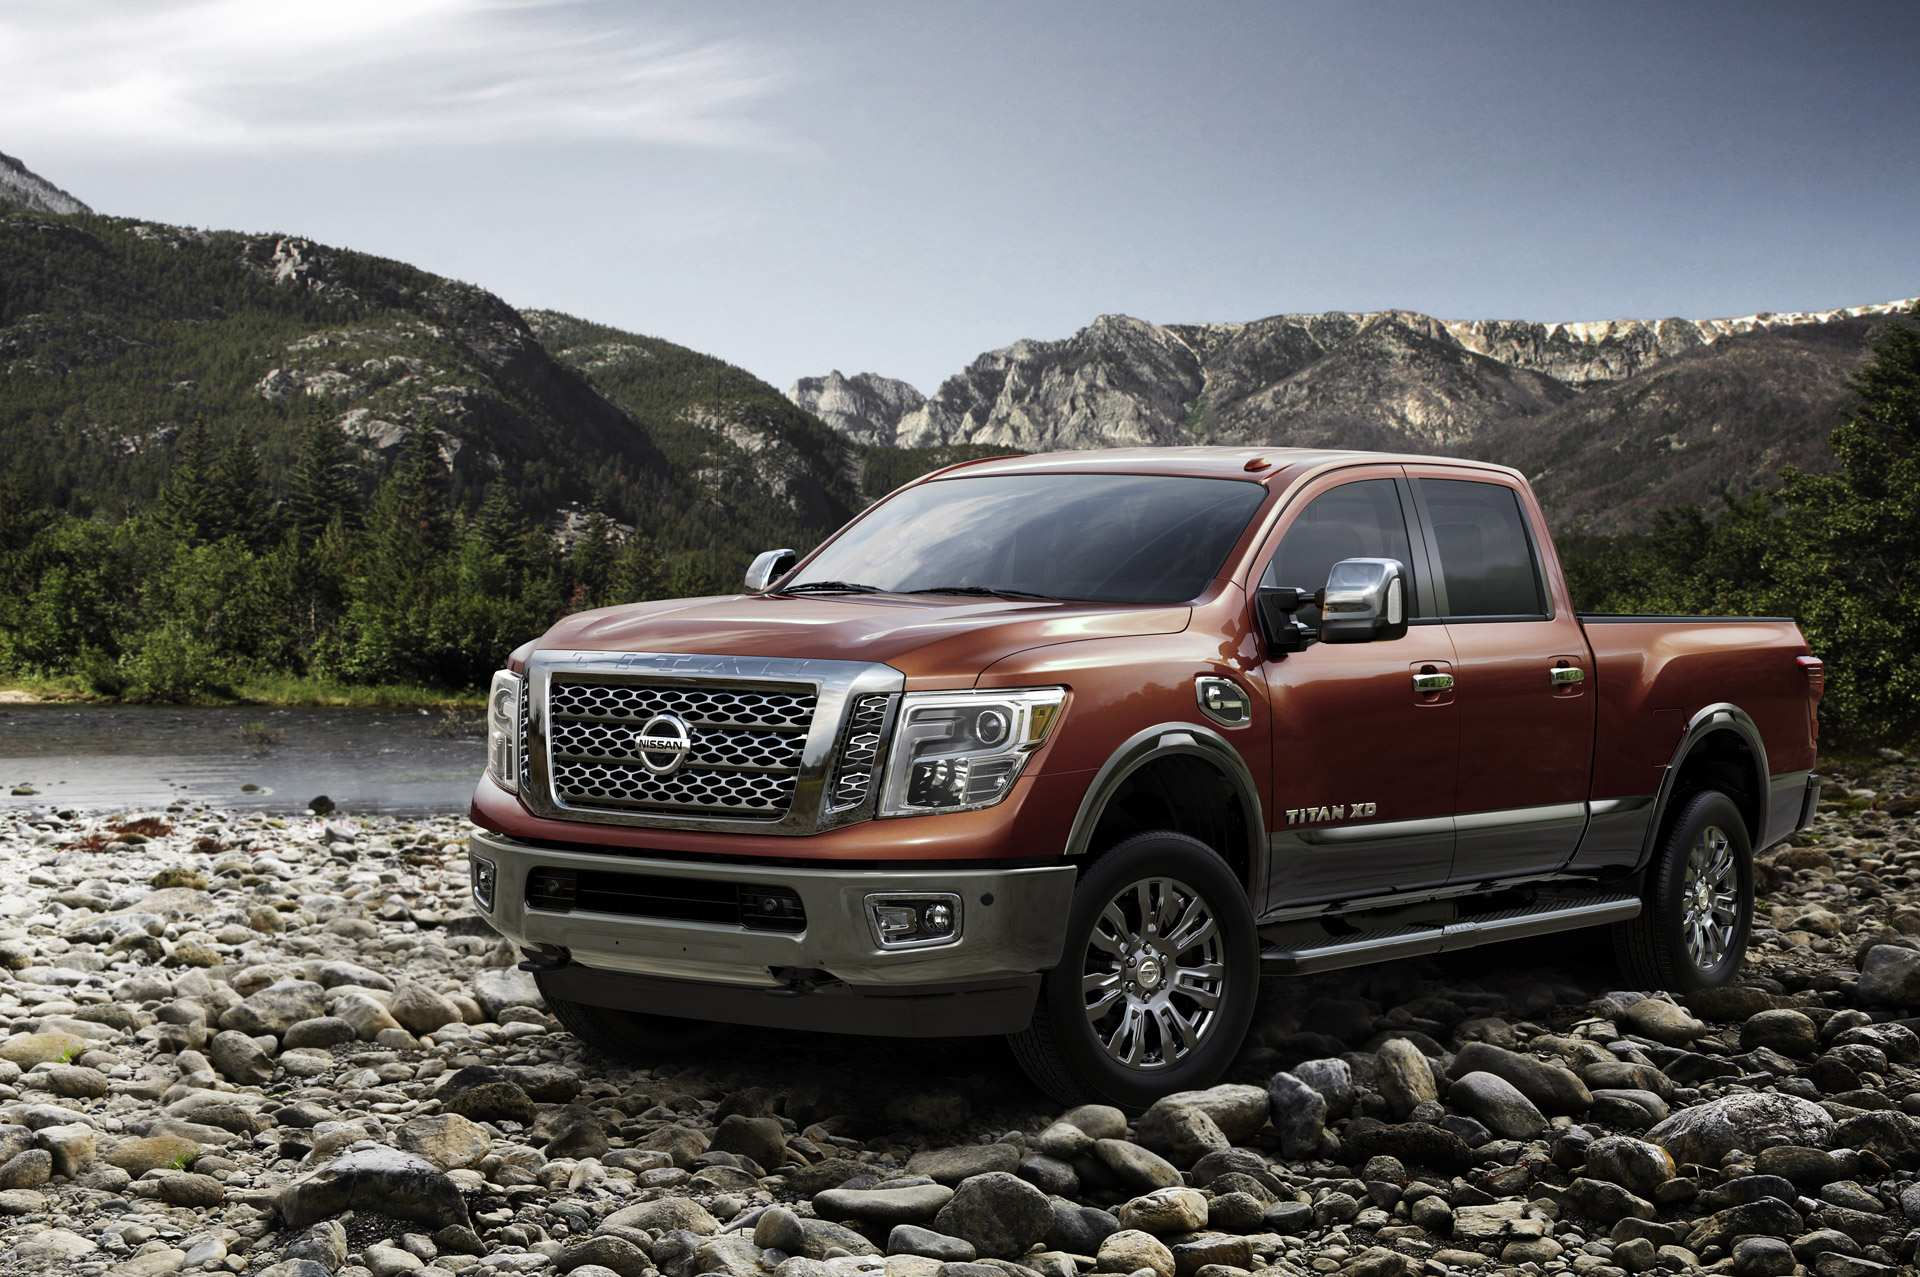 97 All New Nissan Titan Xd 2020 Redesign And Concept